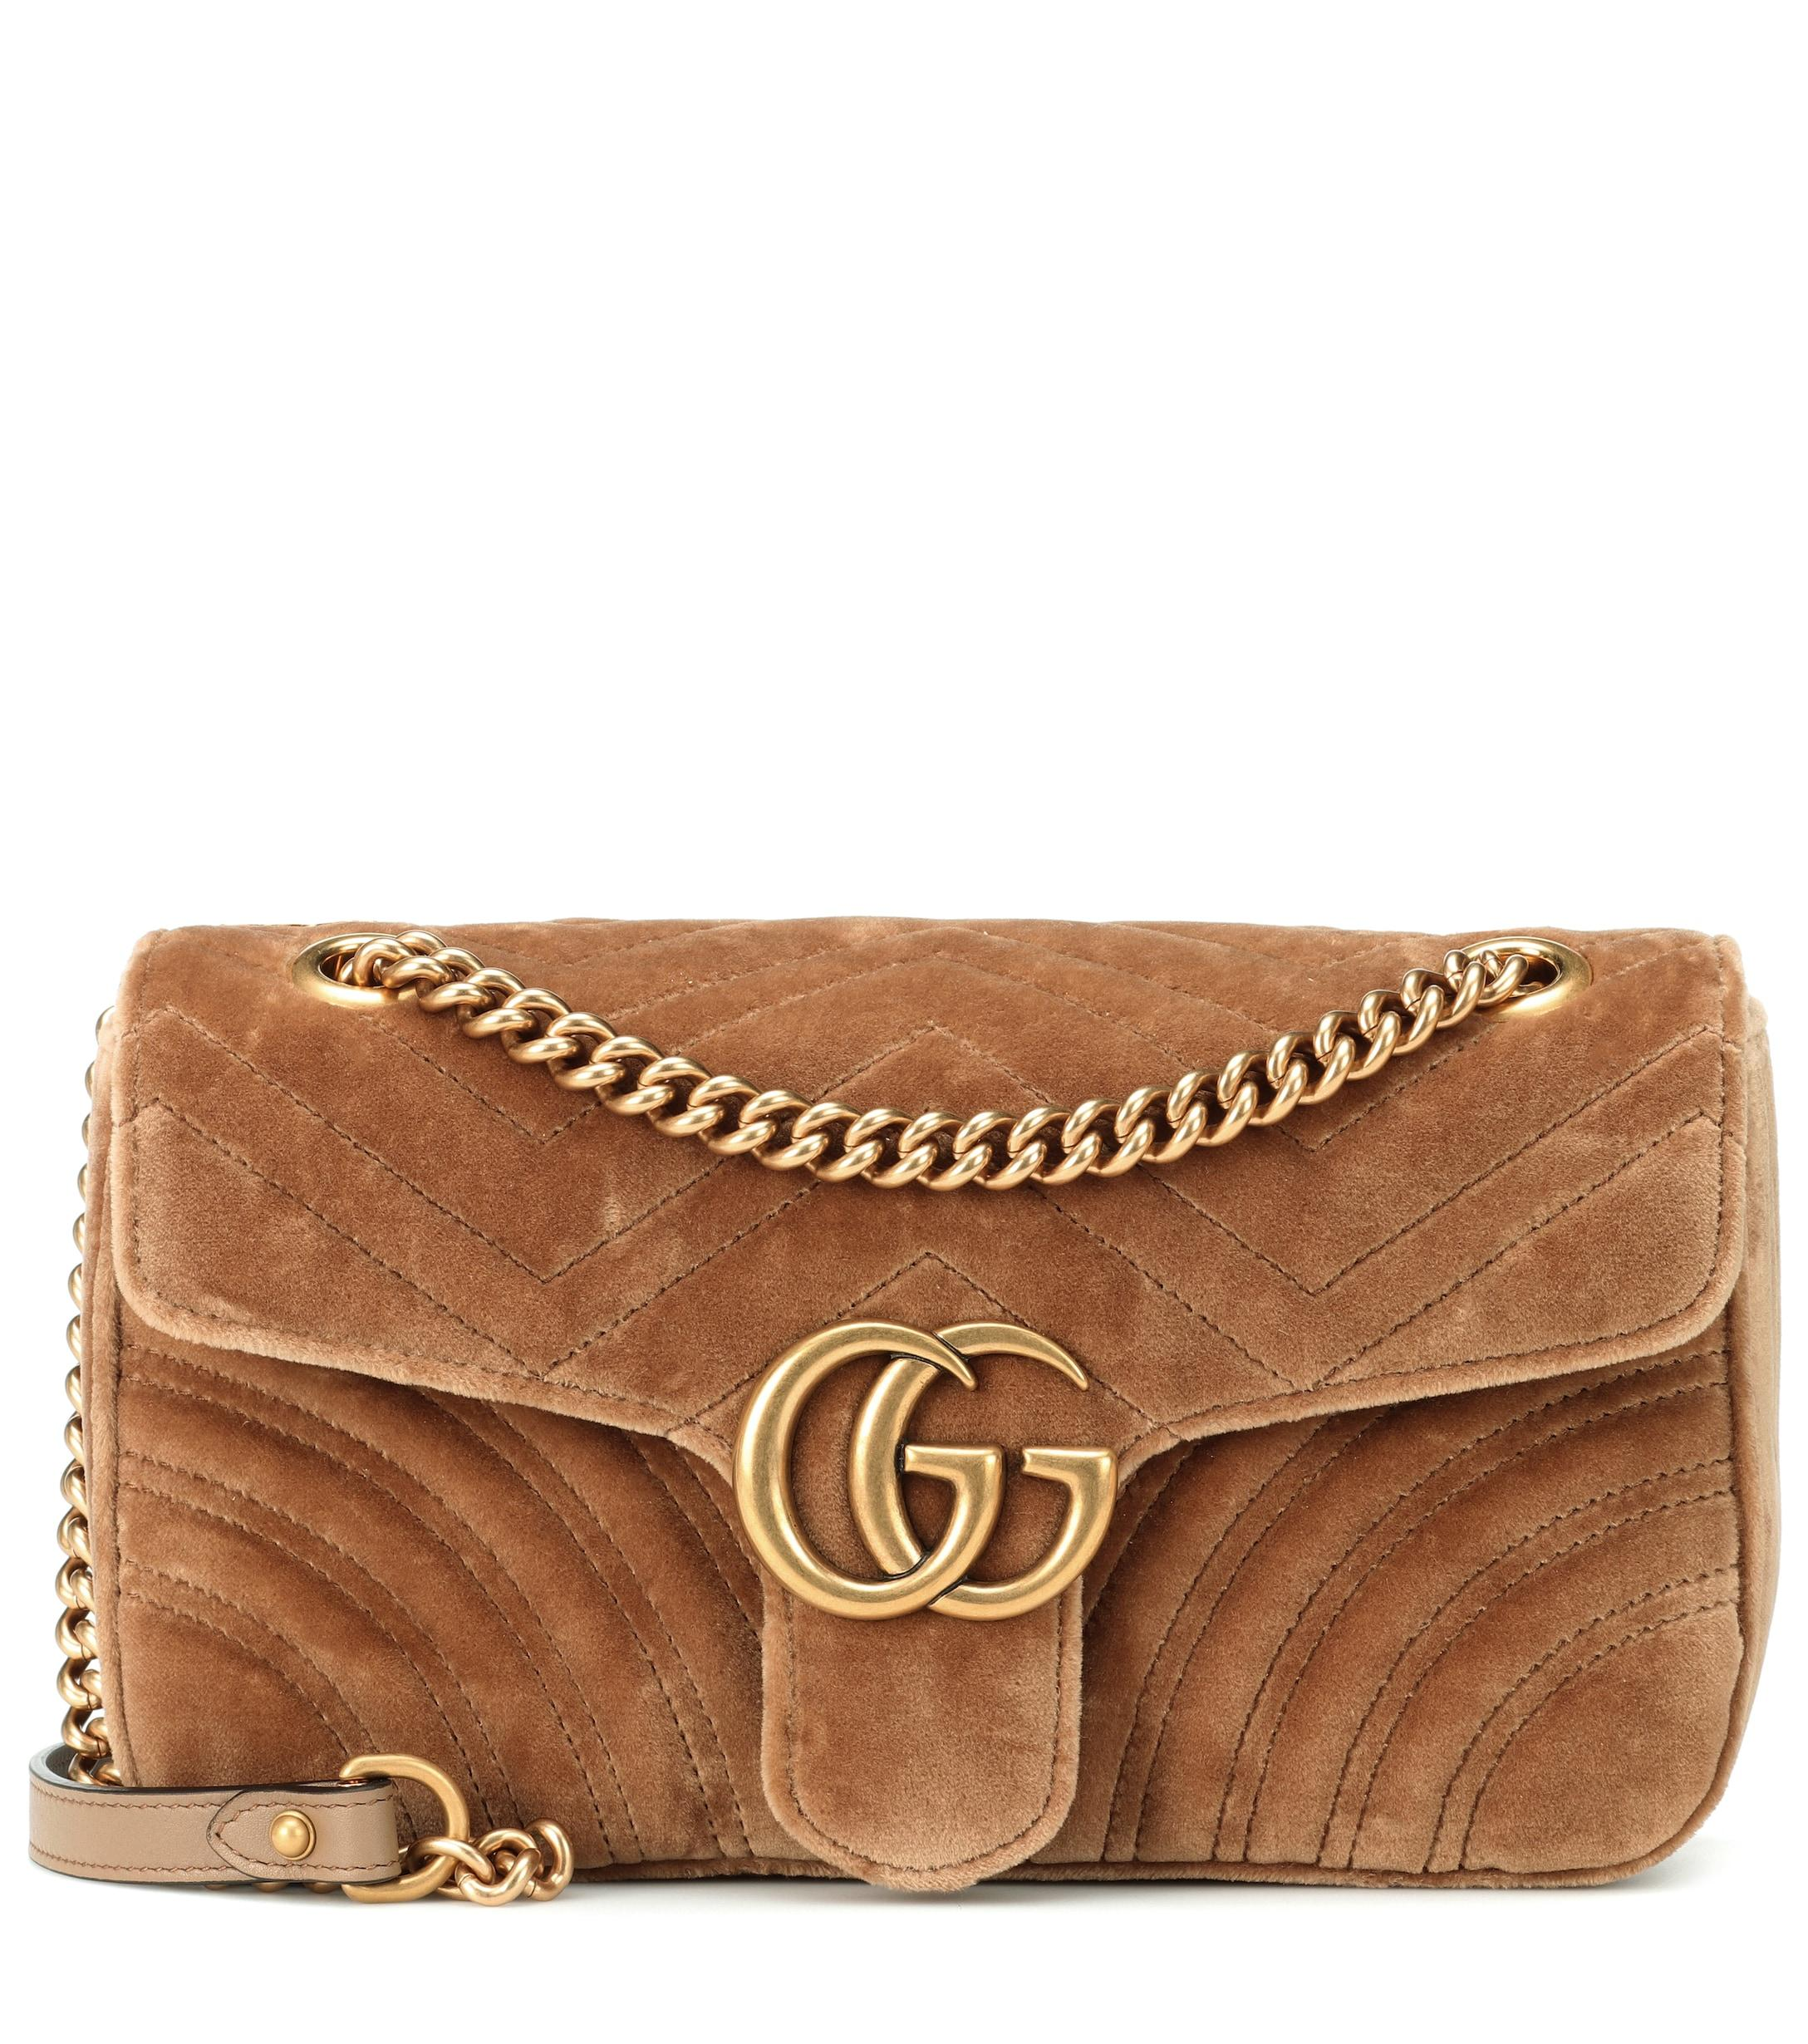 d89d4e8613d Gucci GG Marmont Small Shoulder Bag in Brown - Lyst